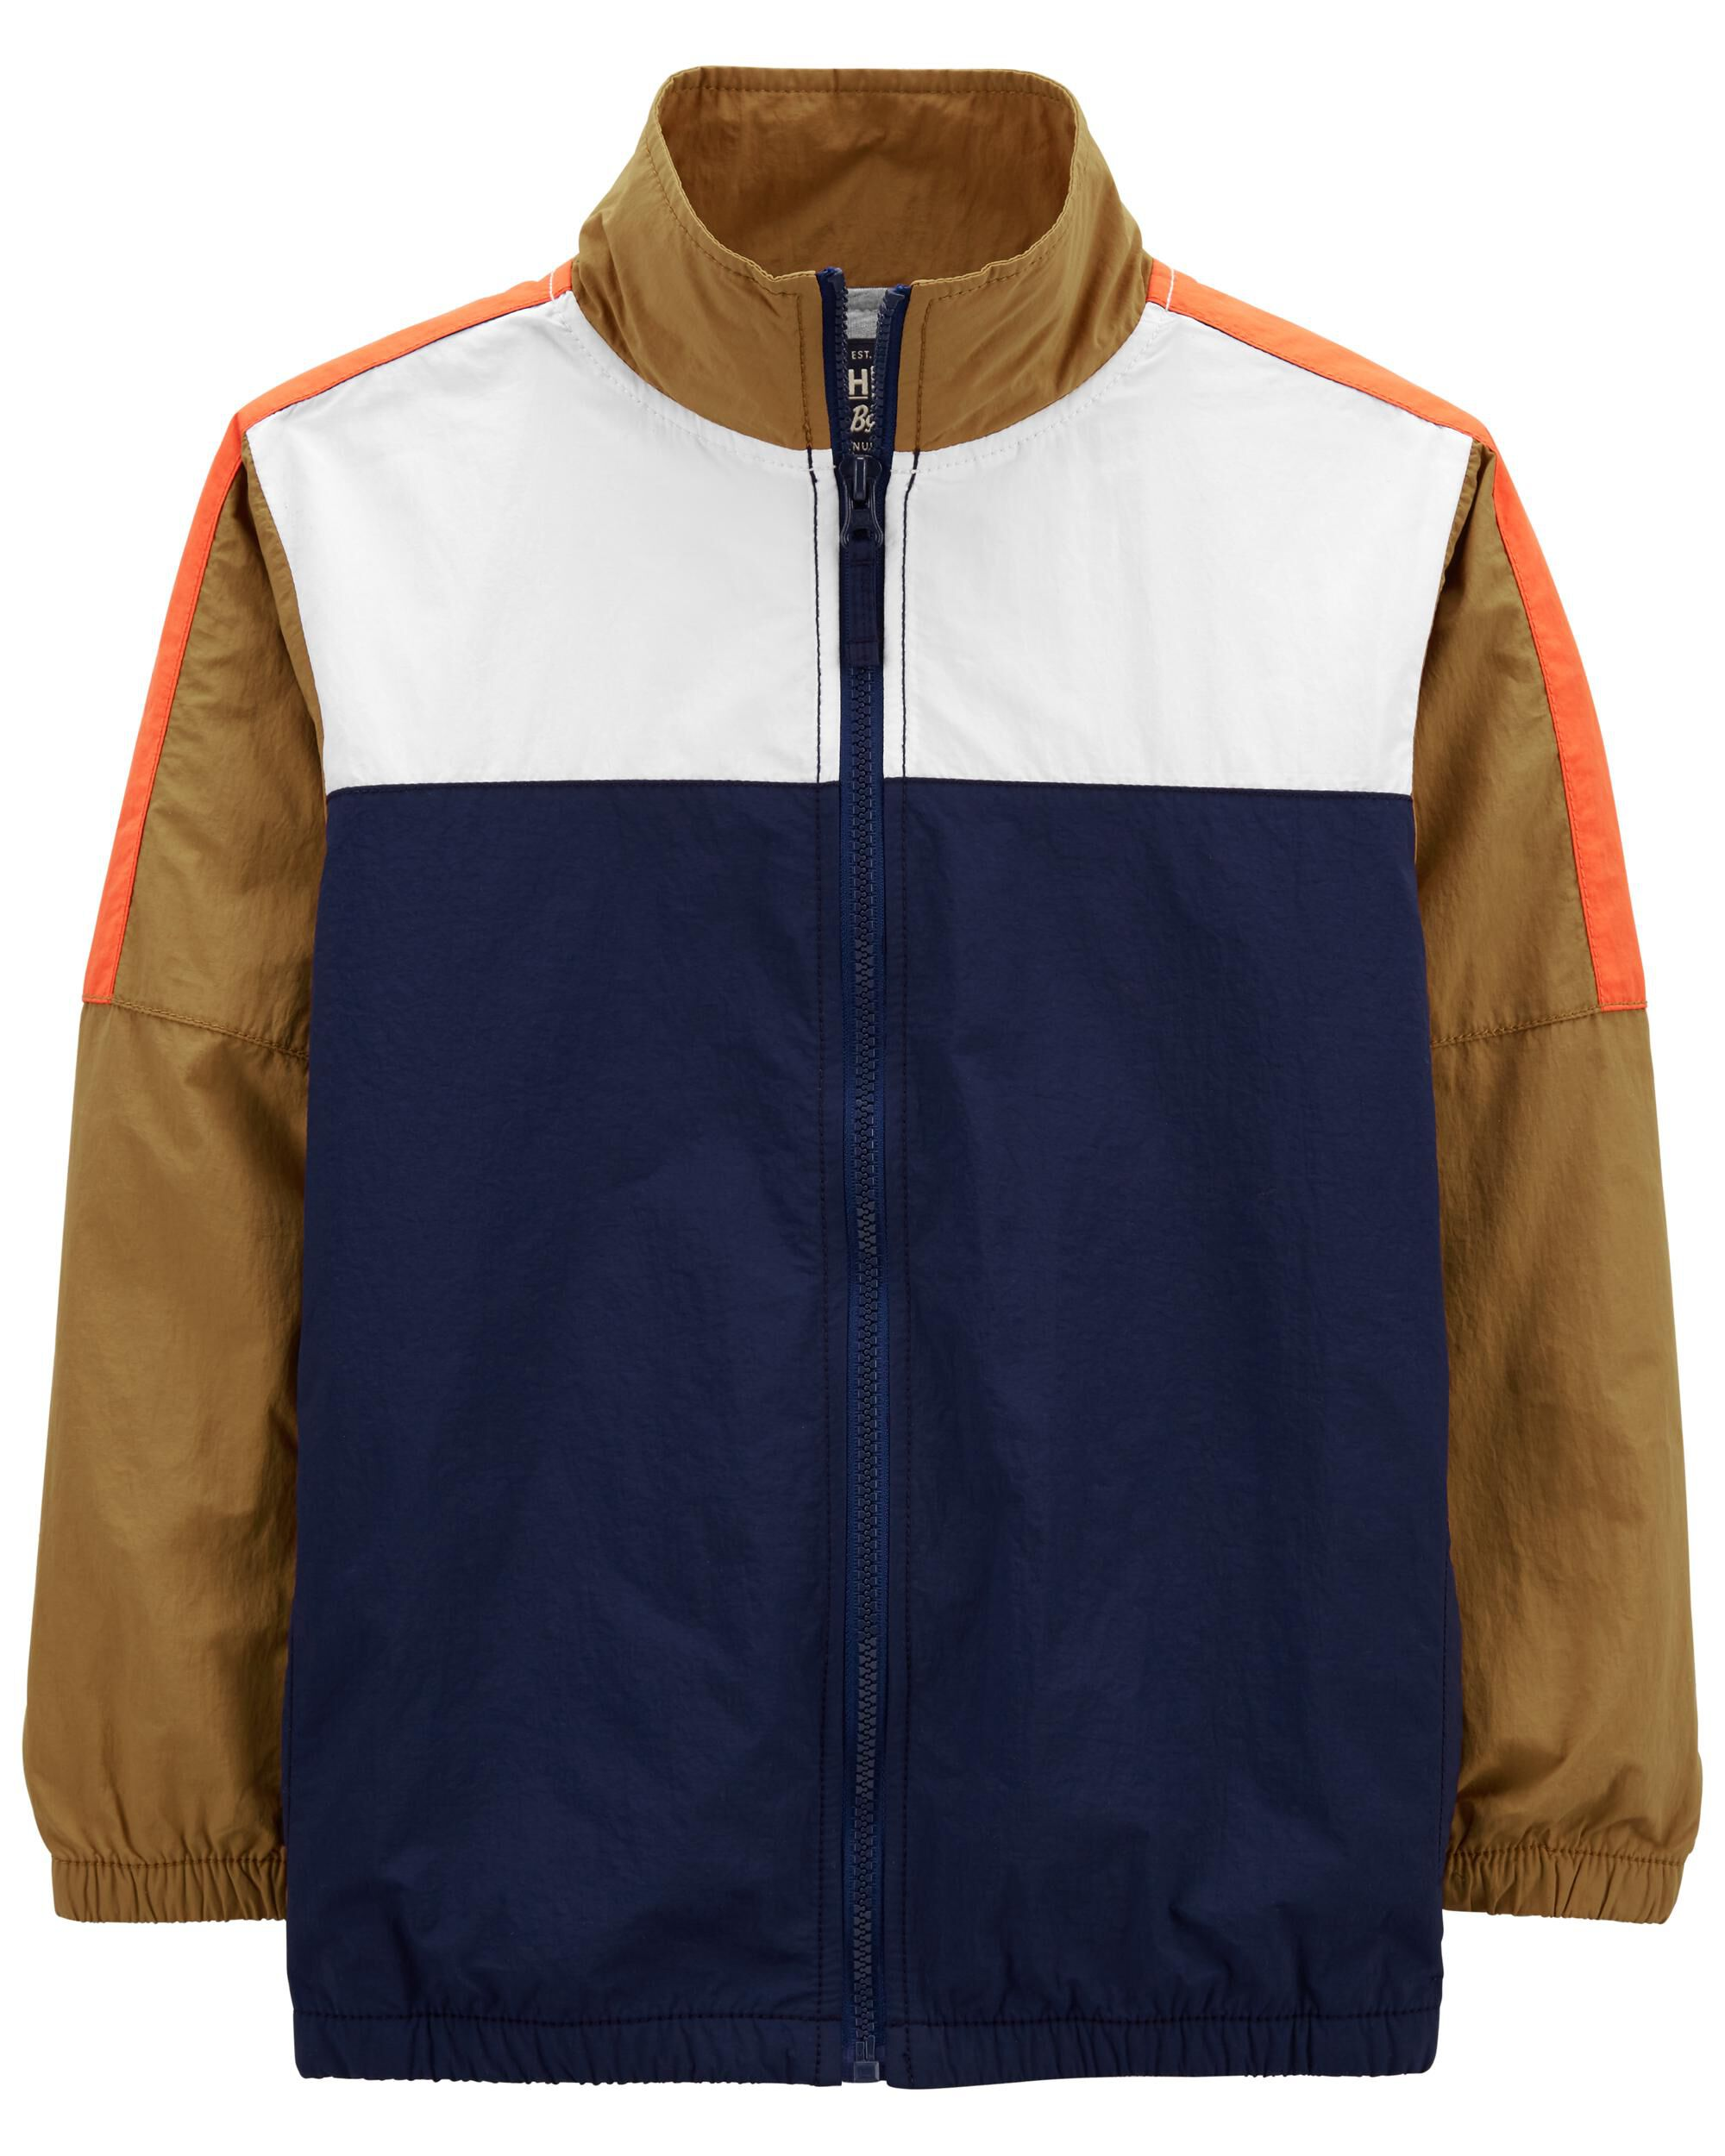 *CLEARANCE* Jersey-Lined Active Jacket